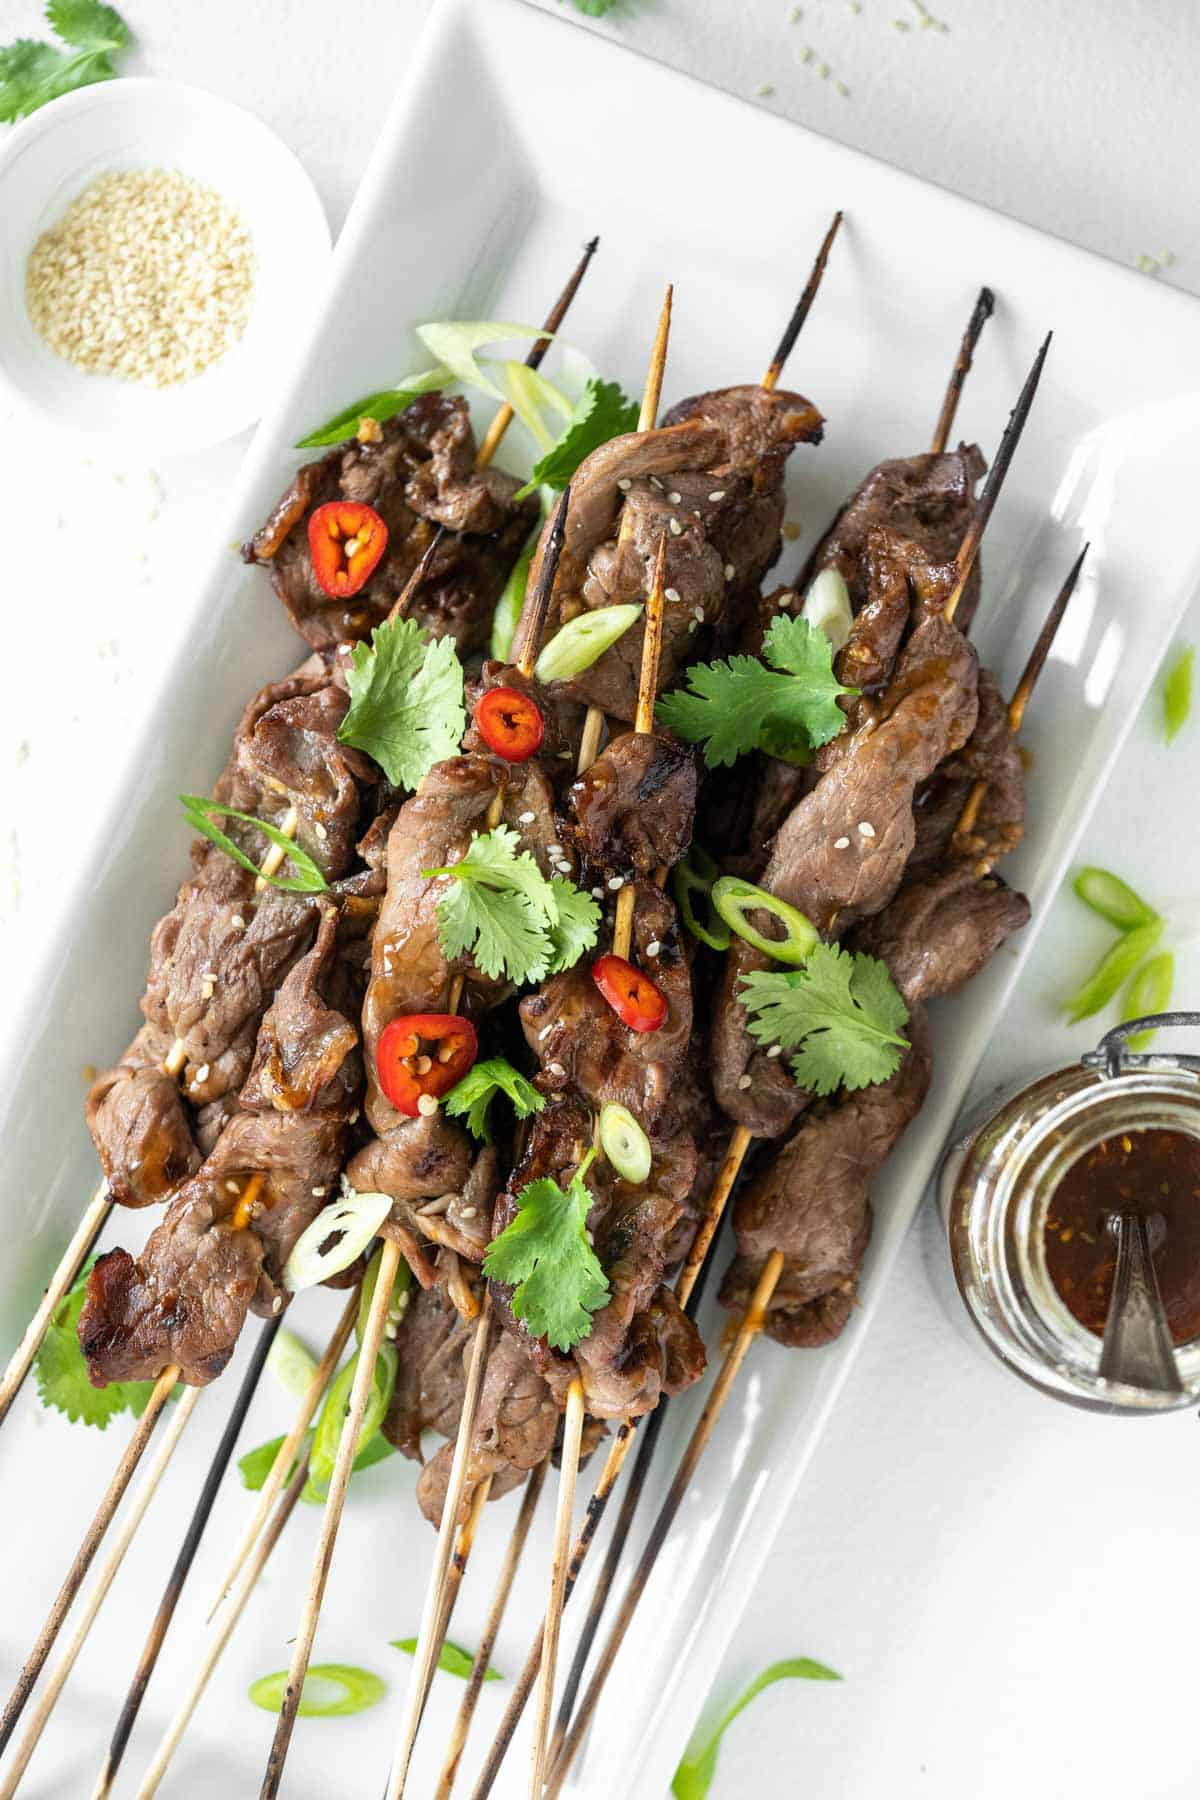 overhead of a white platter with grilled steak skewers topped with peppers and herbs